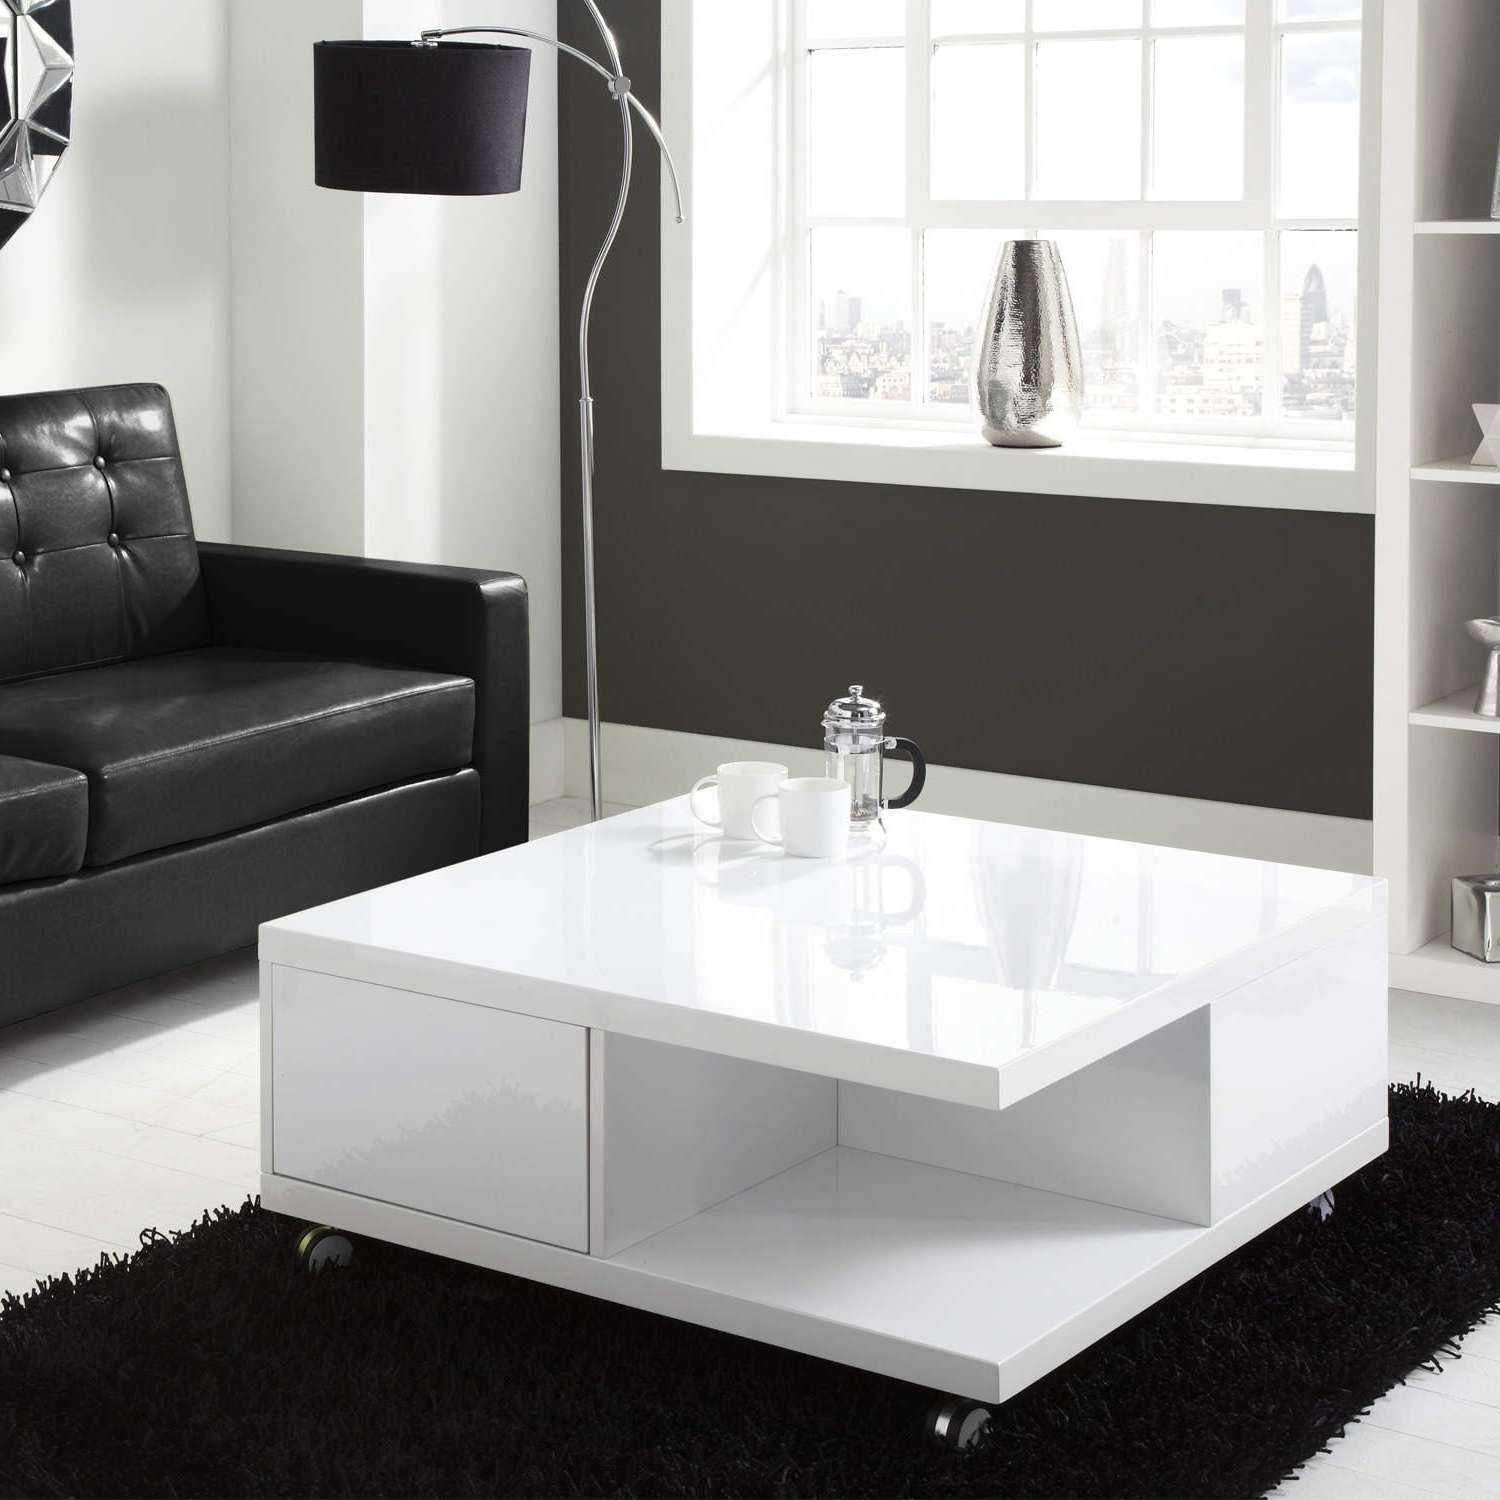 Coffee Tables : Compact White Coffee Tables Canada High Gloss Throughout Popular White High Gloss Coffee Tables (View 2 of 20)